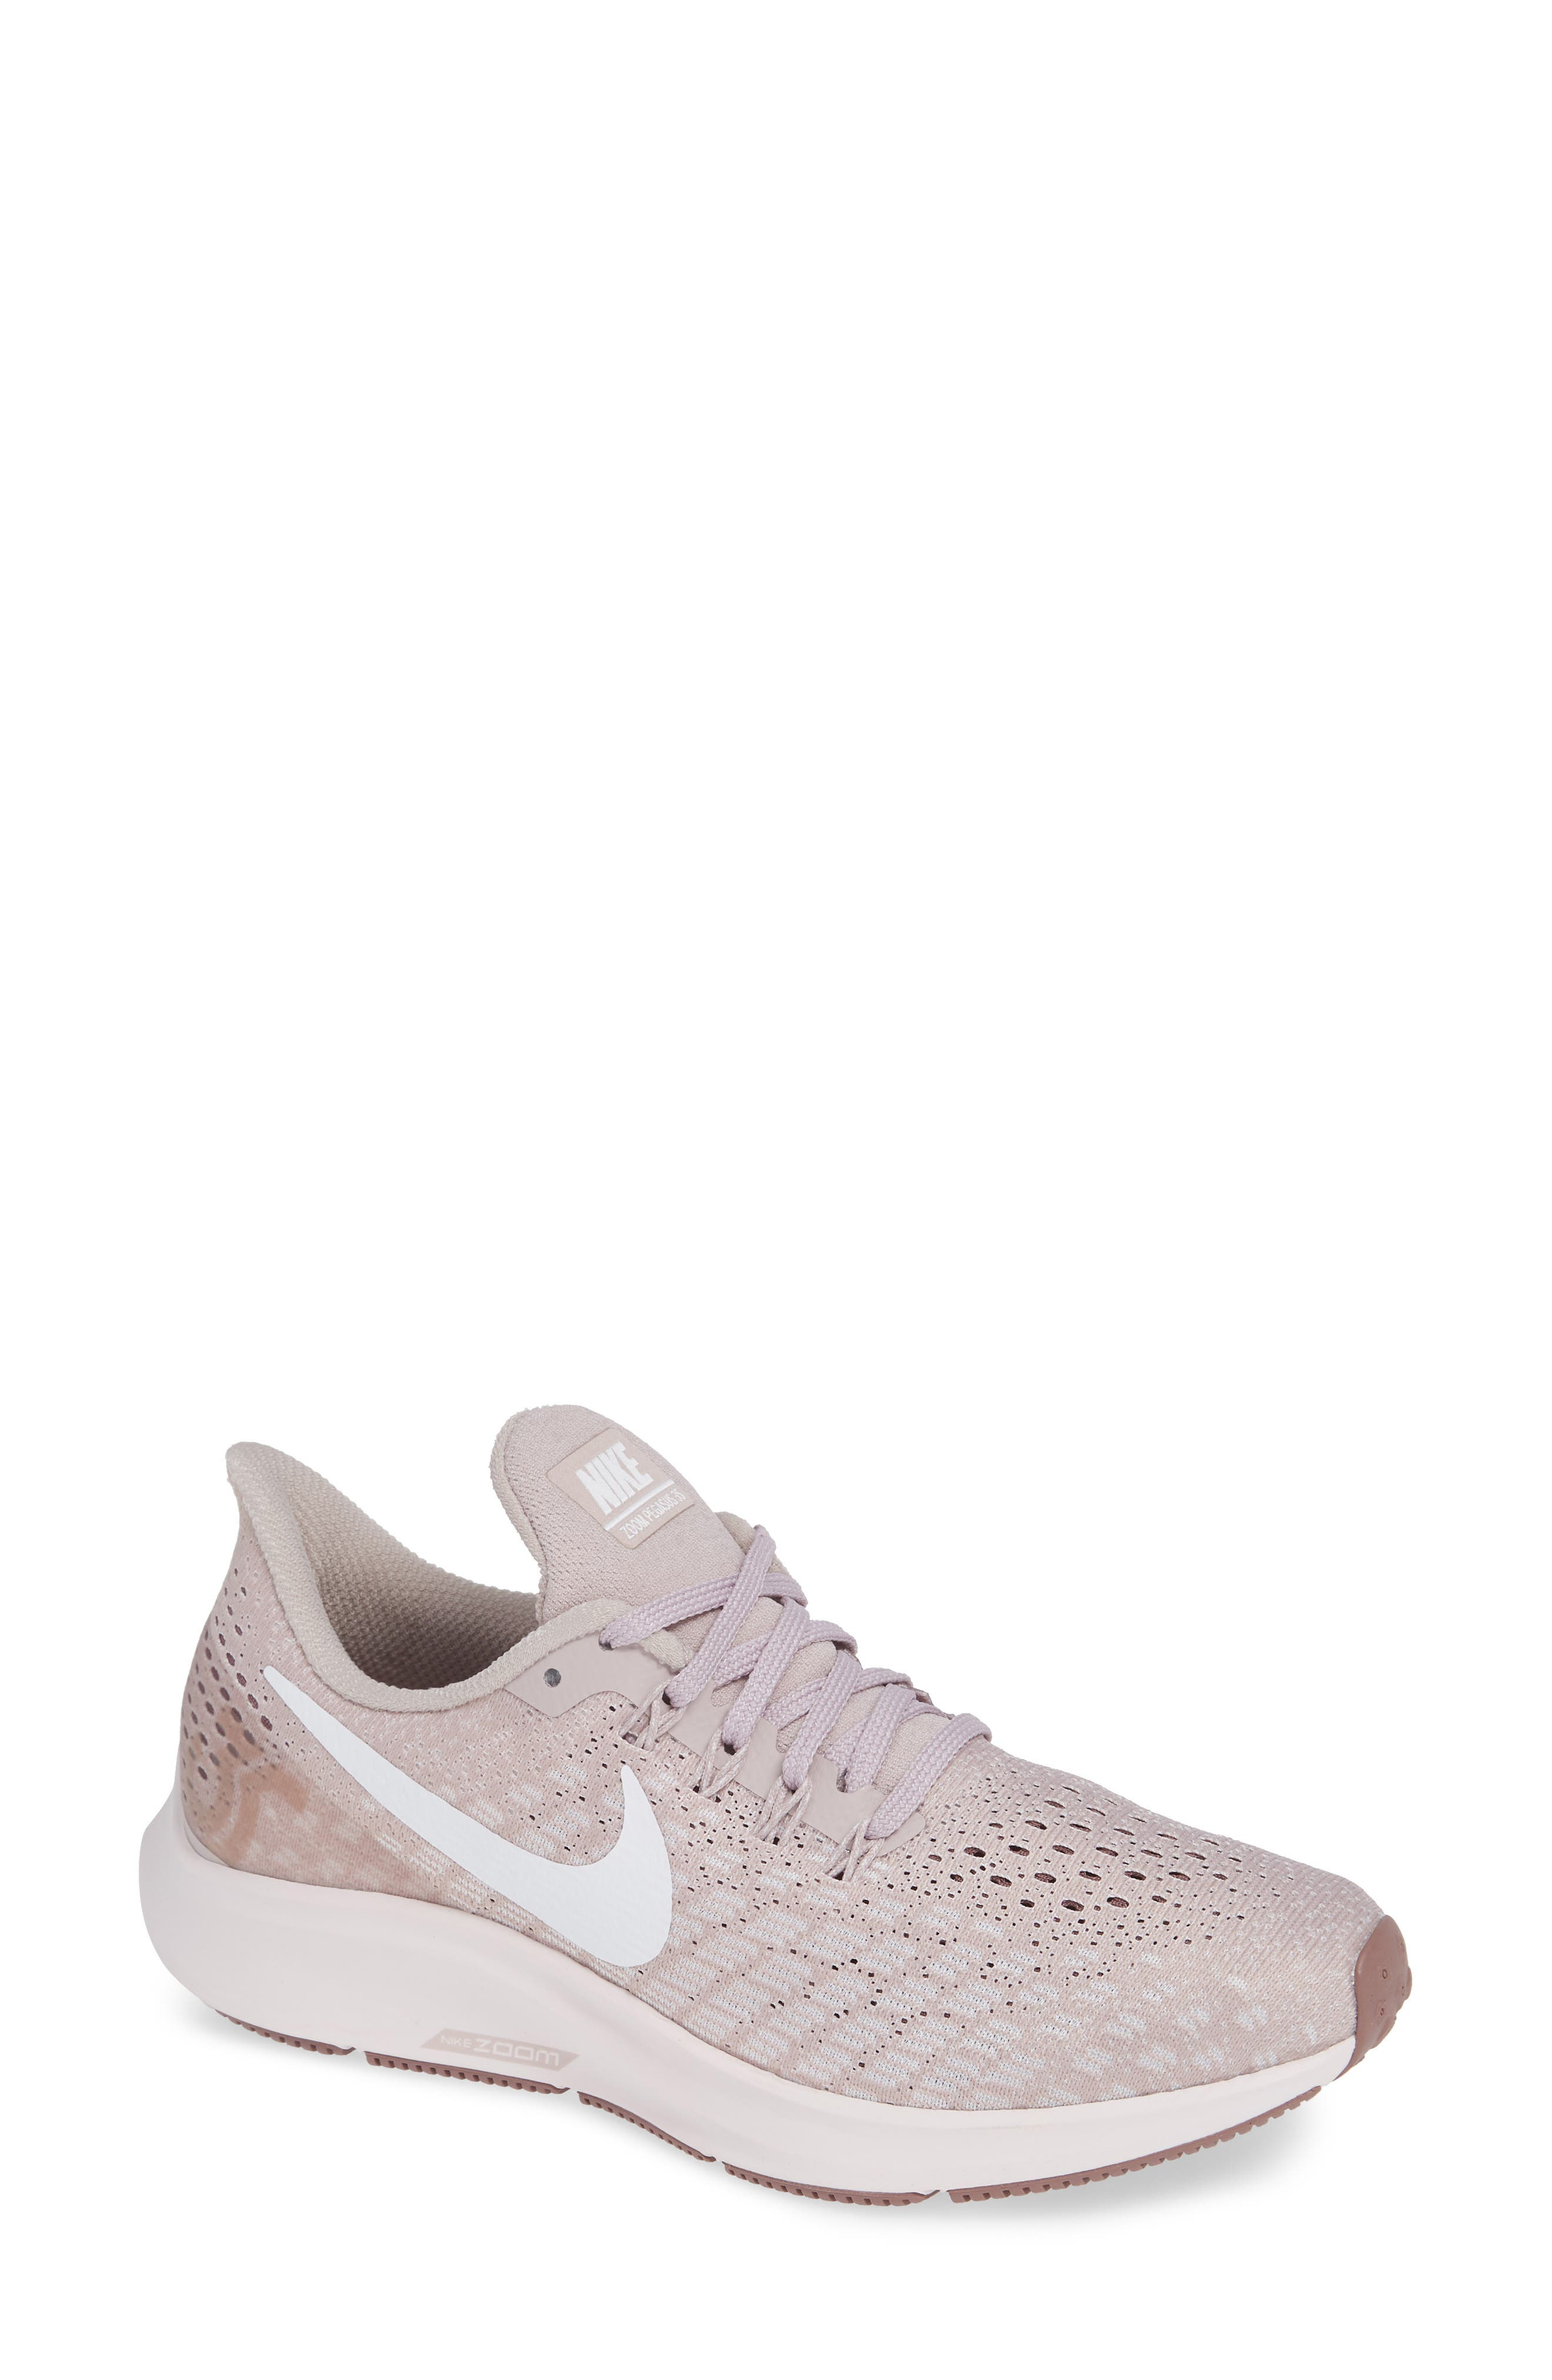 reputable site 5db2b dbb03 nike air max jewell pink. womens pink and gray nike sneakers